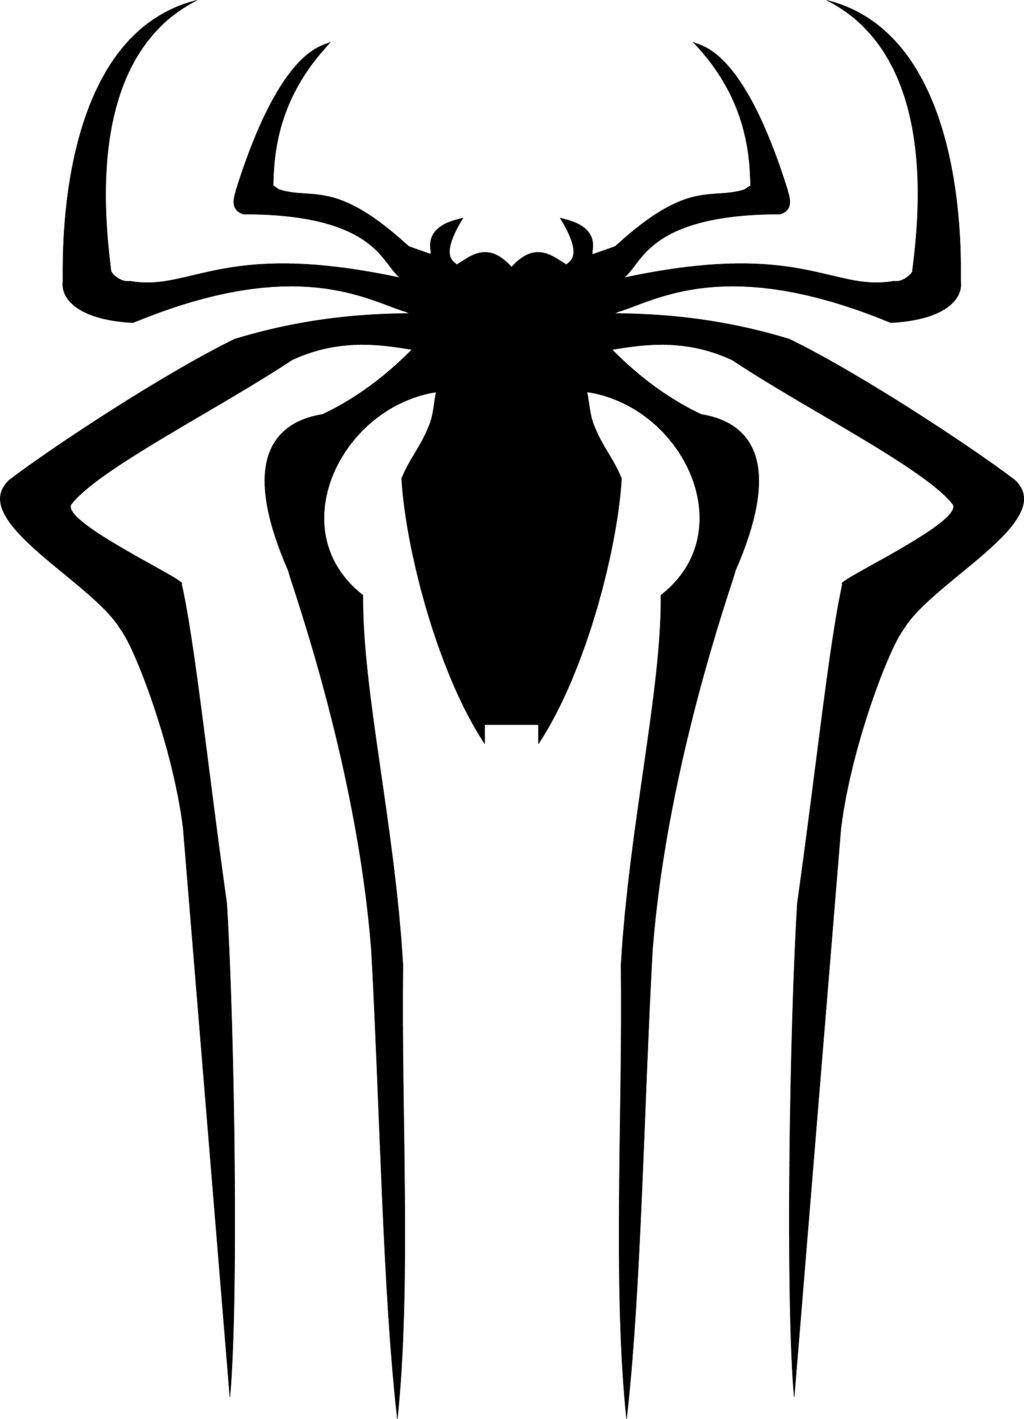 Free Spiderman Logo Download Free Clip Art Free Clip Art